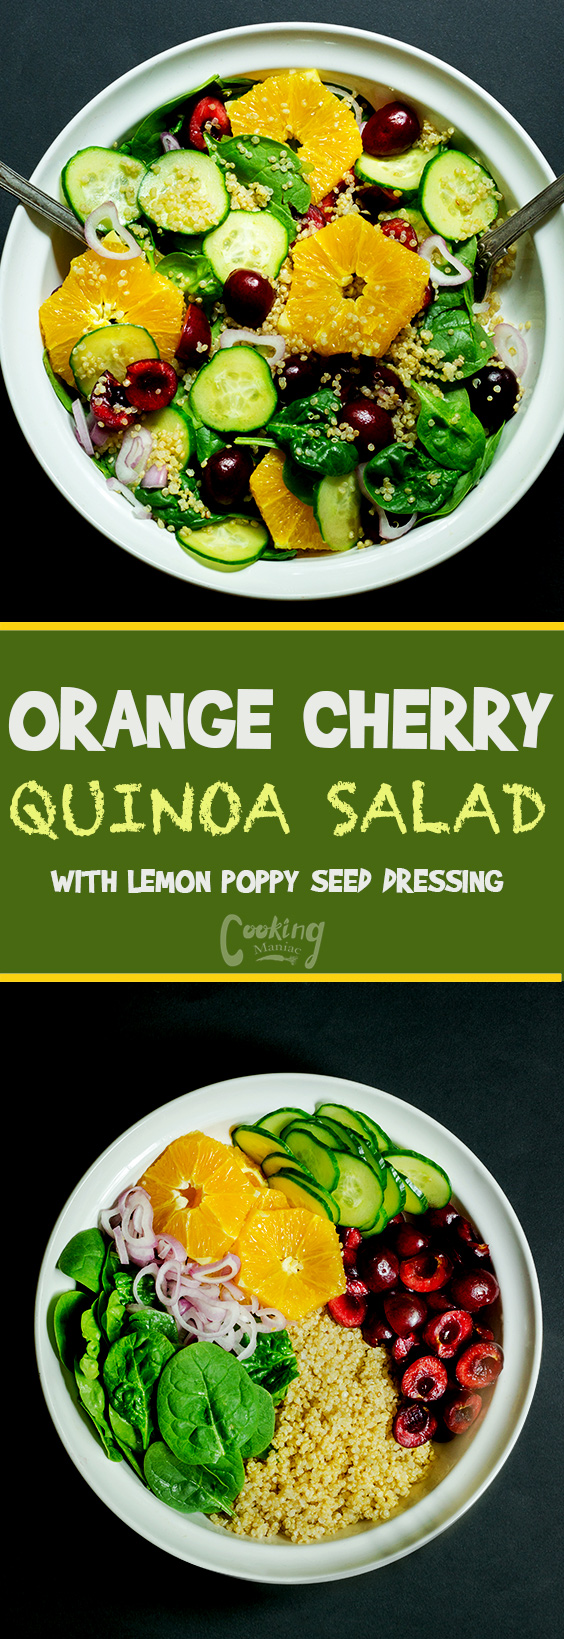 This orange cherry quinoa salad is quick and easy, it requires little cooking. This salad is covered in a lemon poppy seed dressing is perfection.